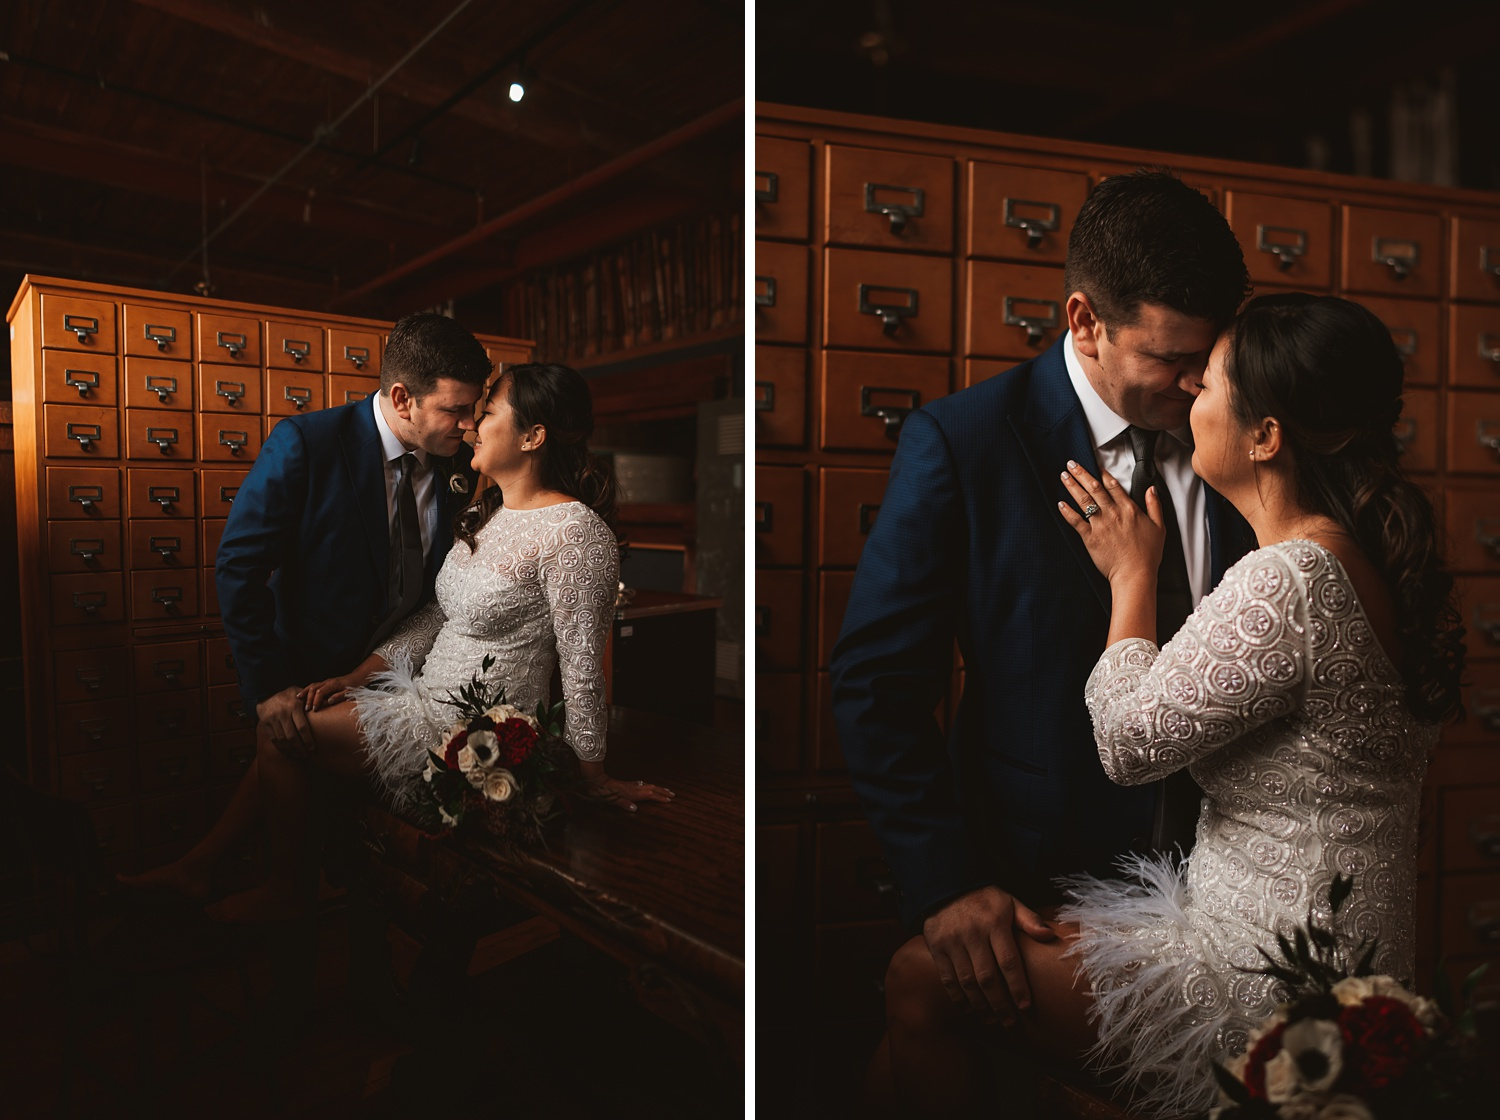 Salvage One Elopement wedding photos - The Adamkovi creative wedding photos